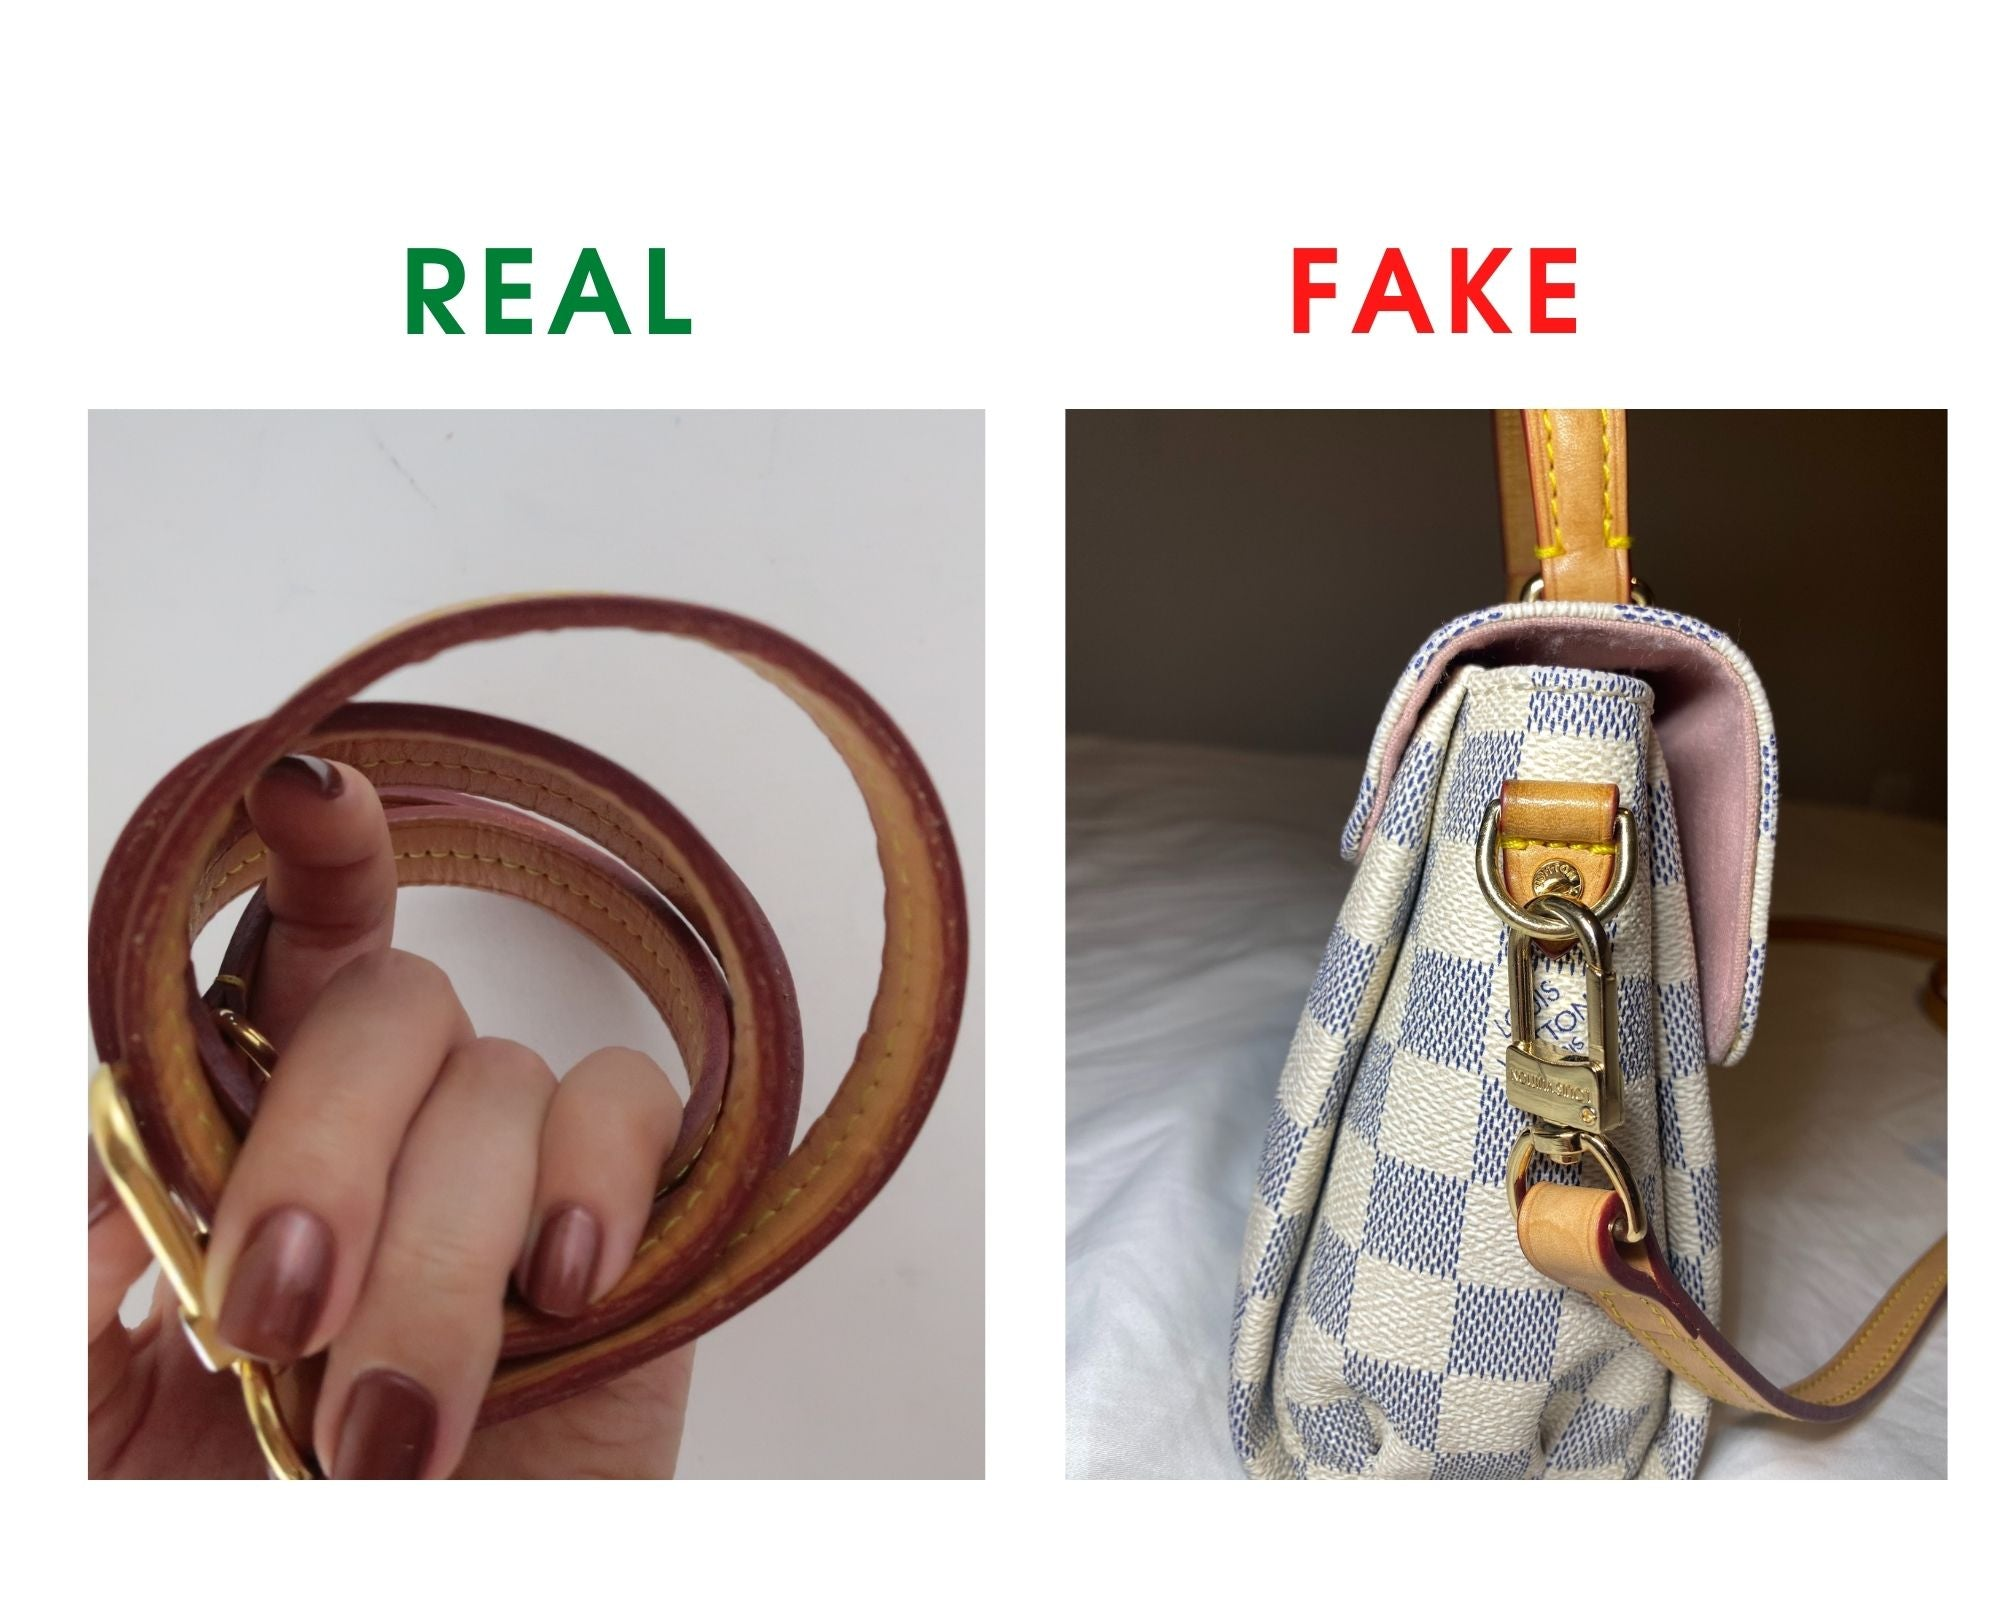 Louis Vuitton Croisette Bag Review and Real vs Fake Comparison (With Real Photos) Shoulder strap